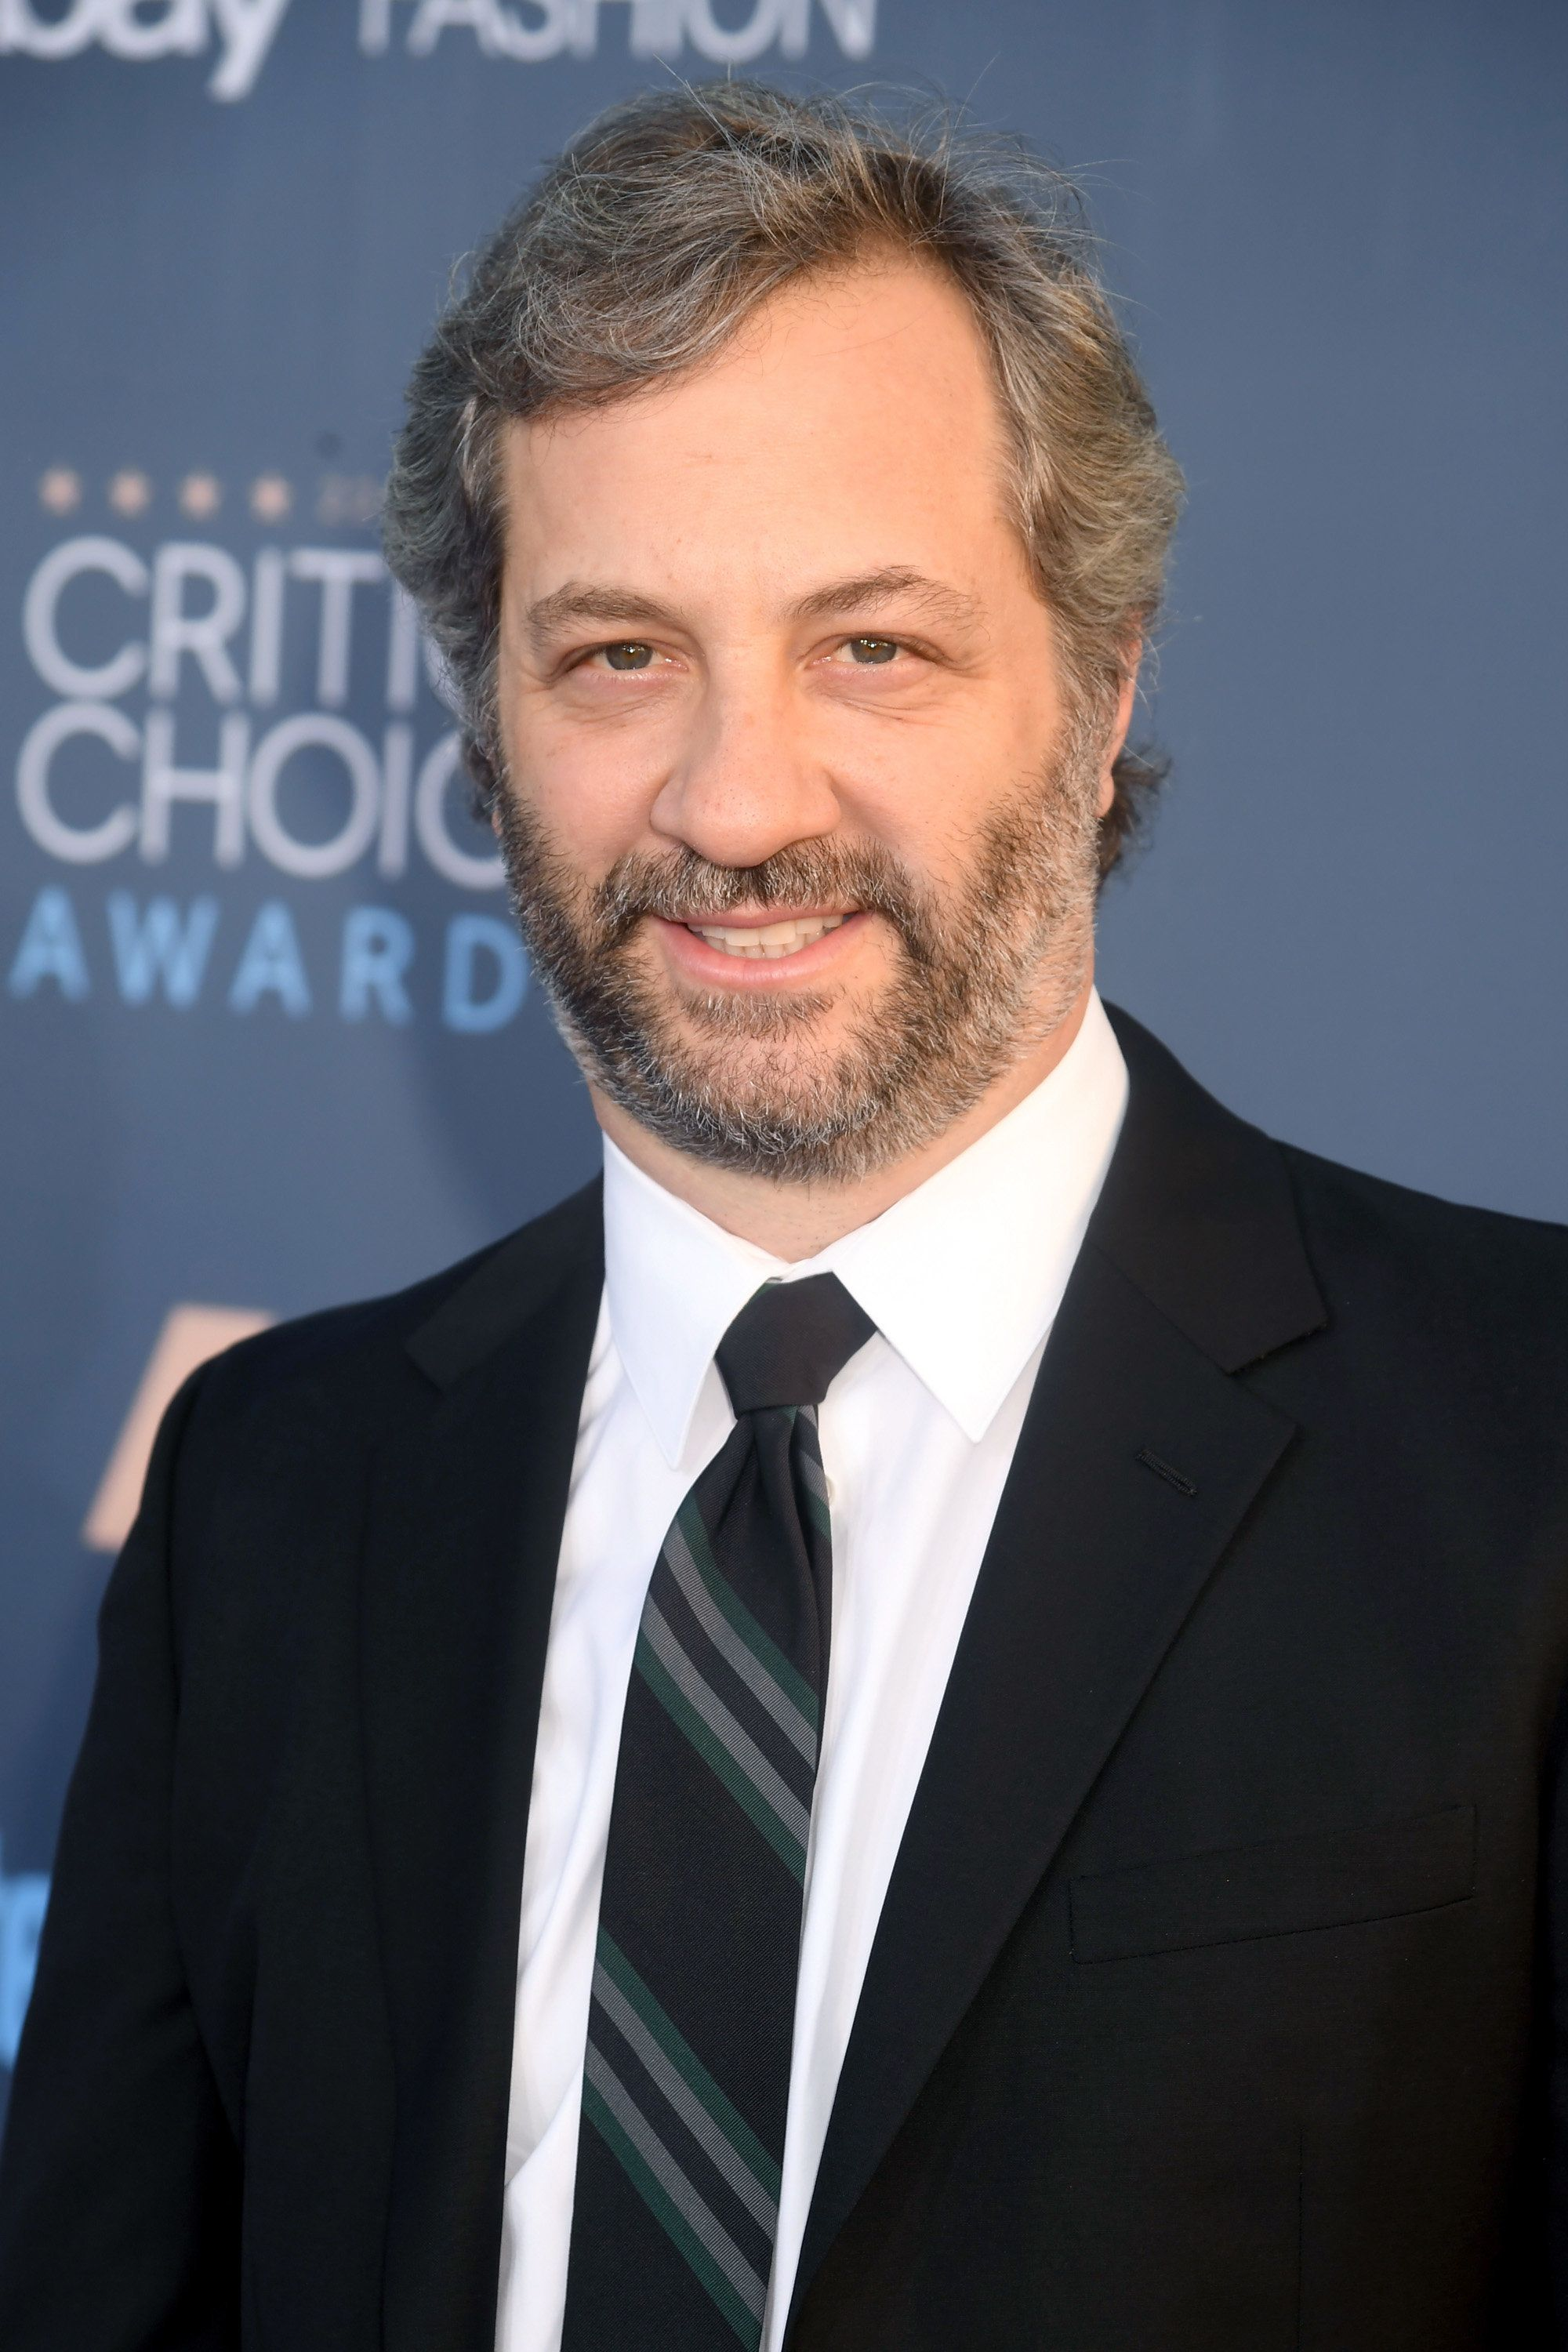 Judd Apatow opened up about Donald Trump in a new interview with The New York